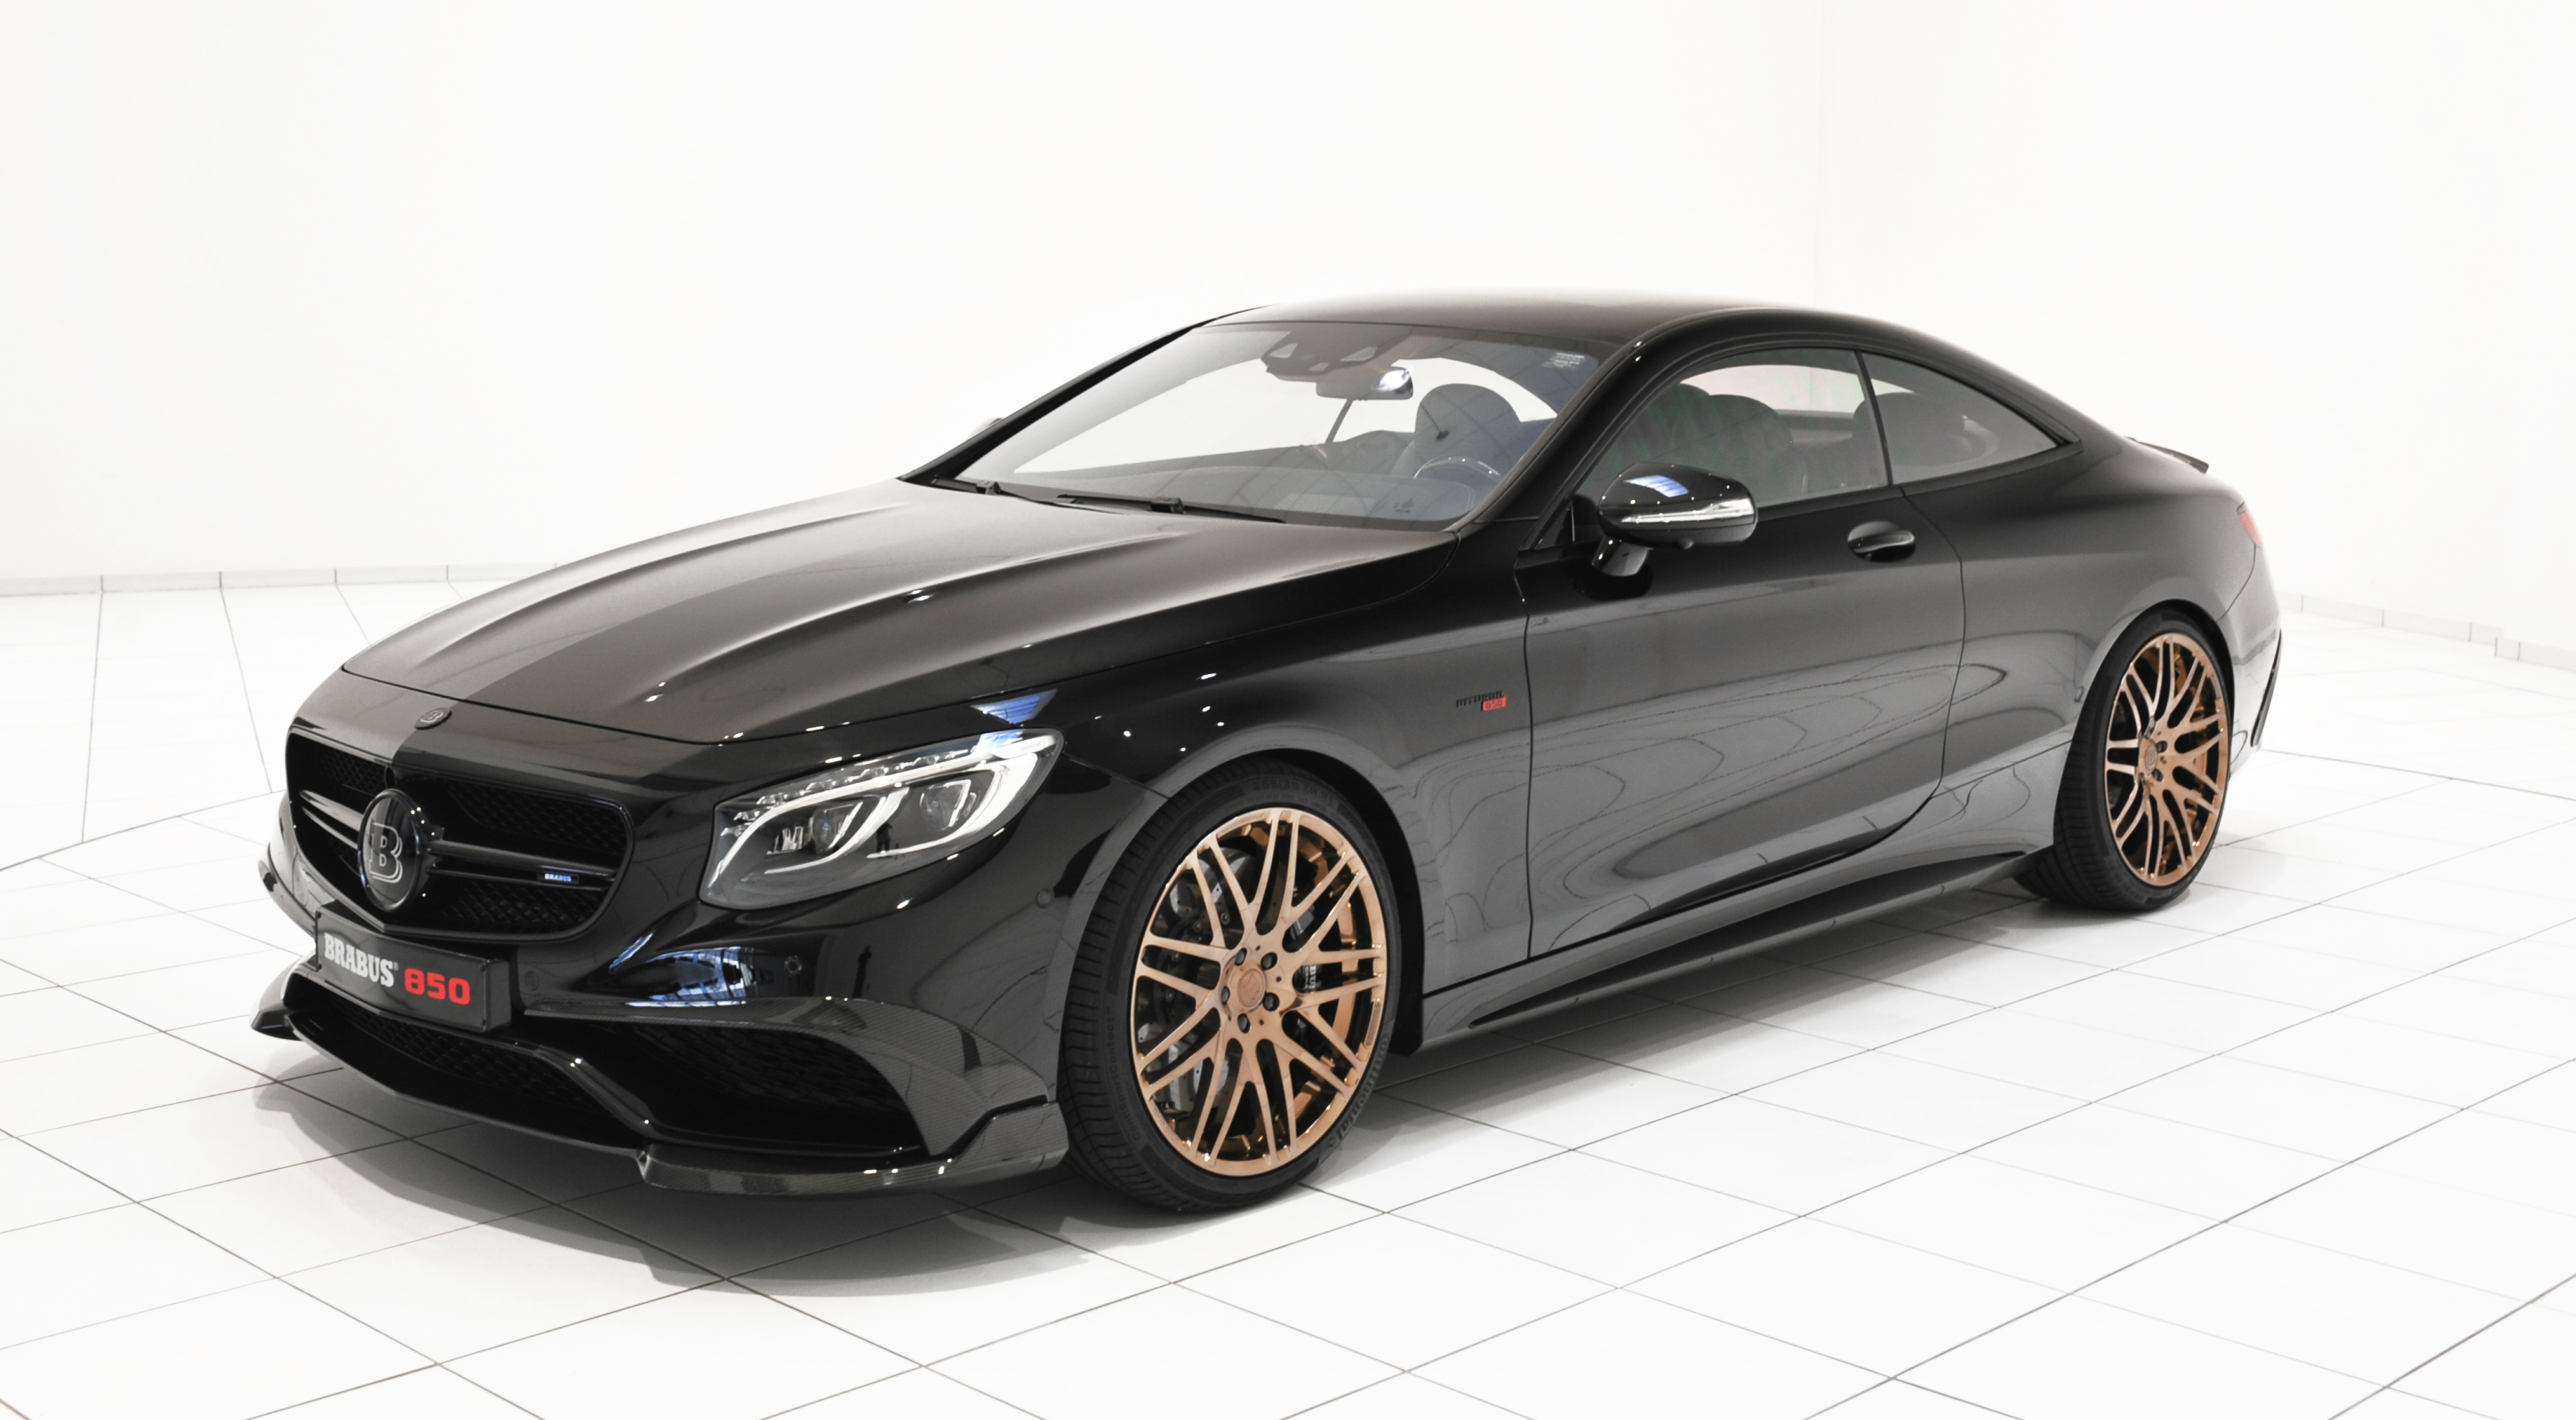 Brabus 850 6.0 Biturbo Coupe – Mercedes S 63 AMG Coupe ...